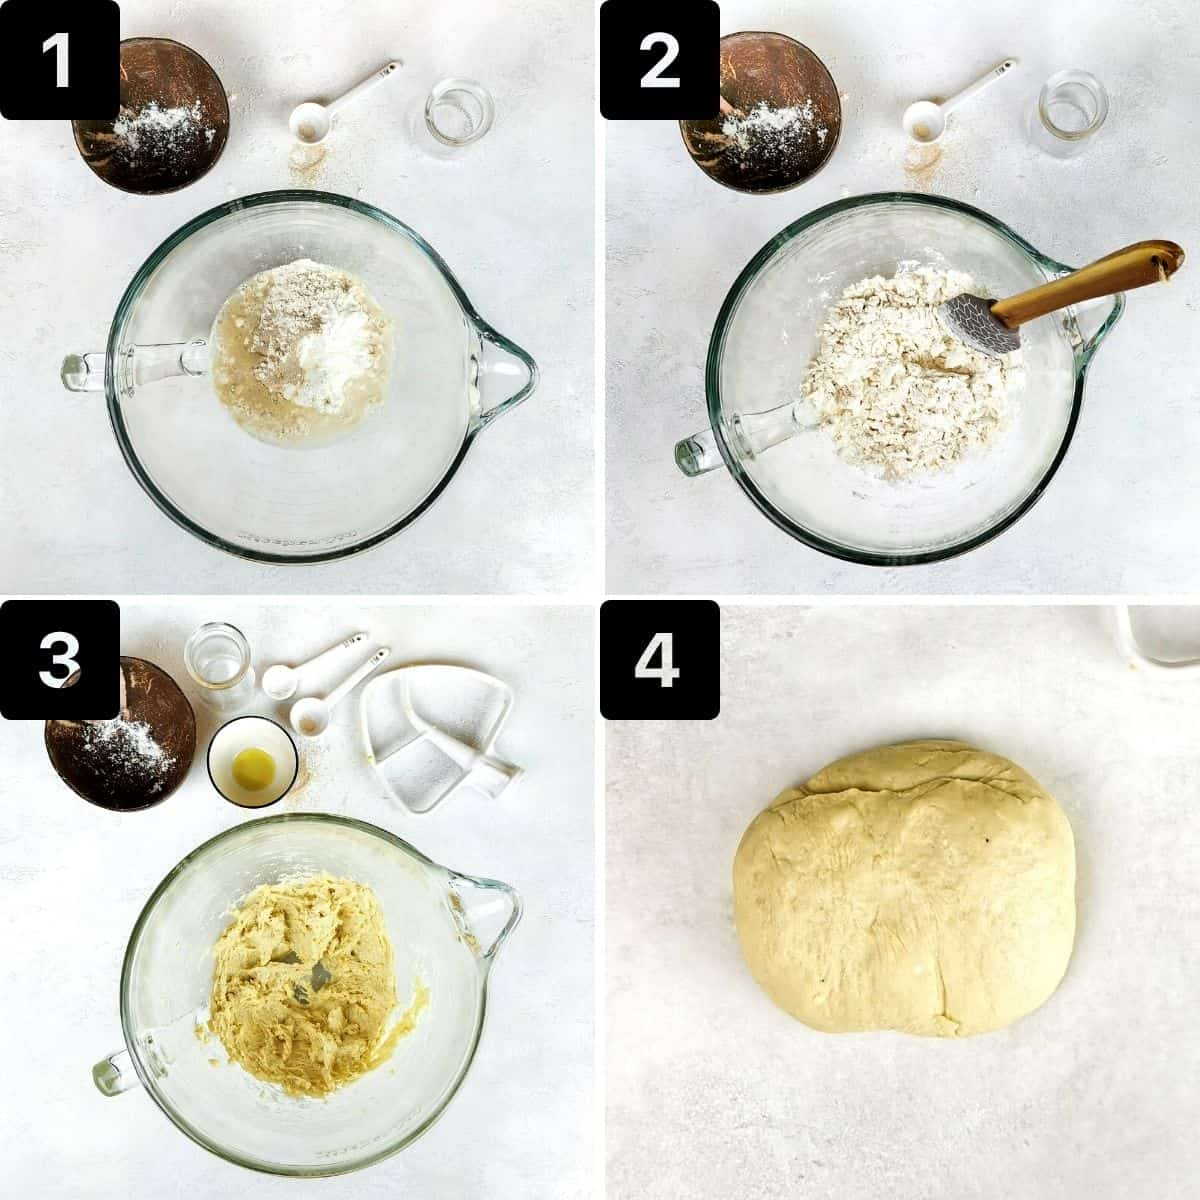 Step-by-step directions to make the pizza dough.